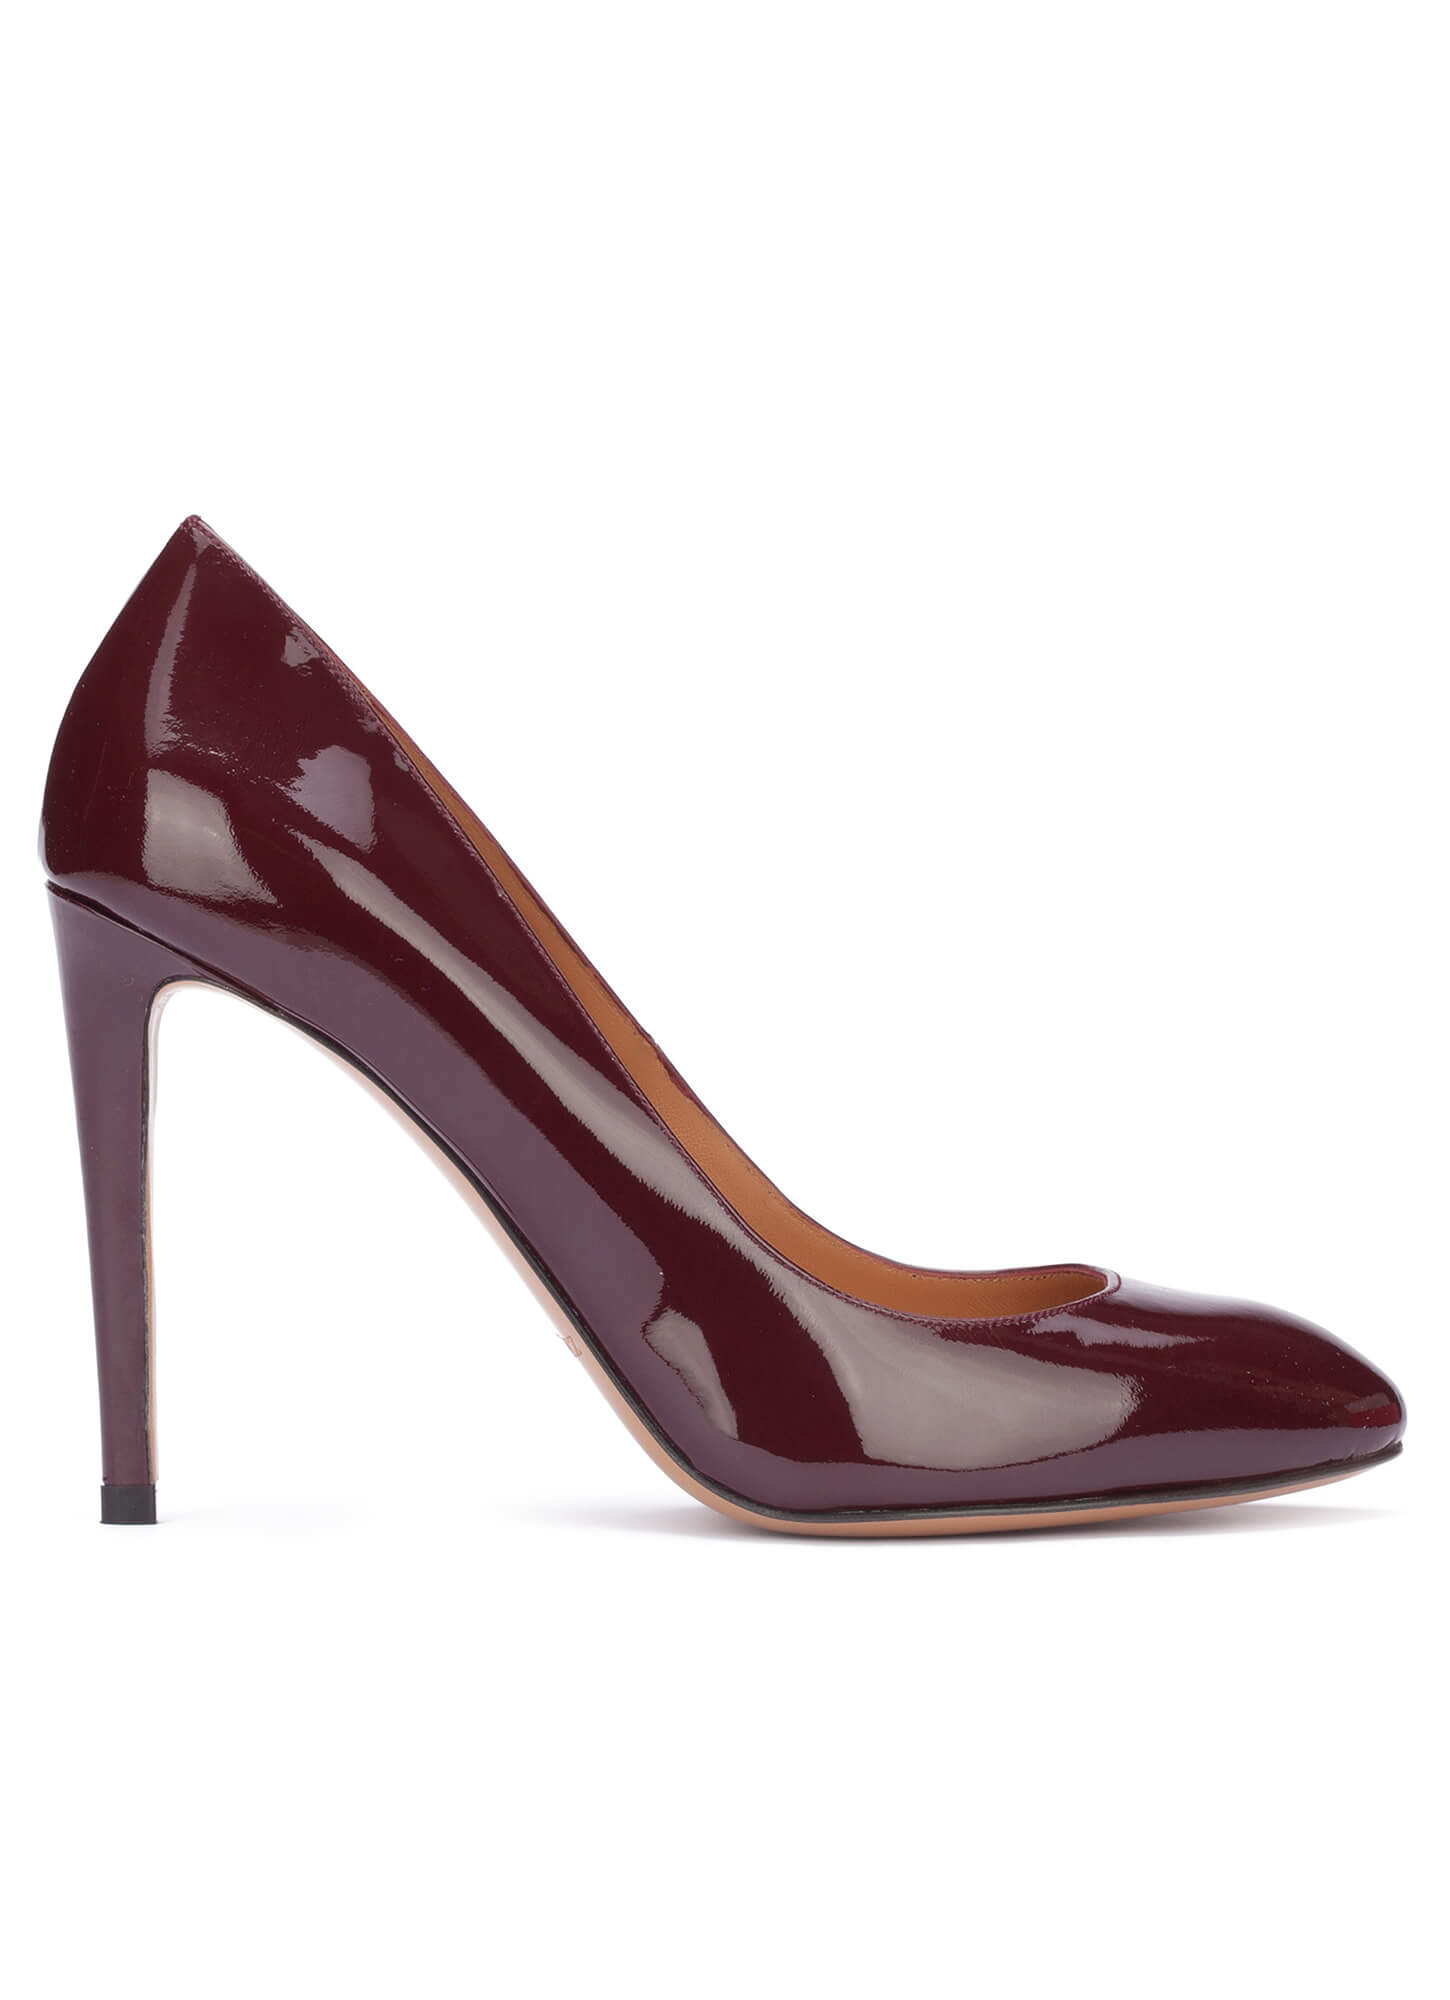 Burgundy high heel shoes - online shoe store Pura Lopez . PURA LOPEZ